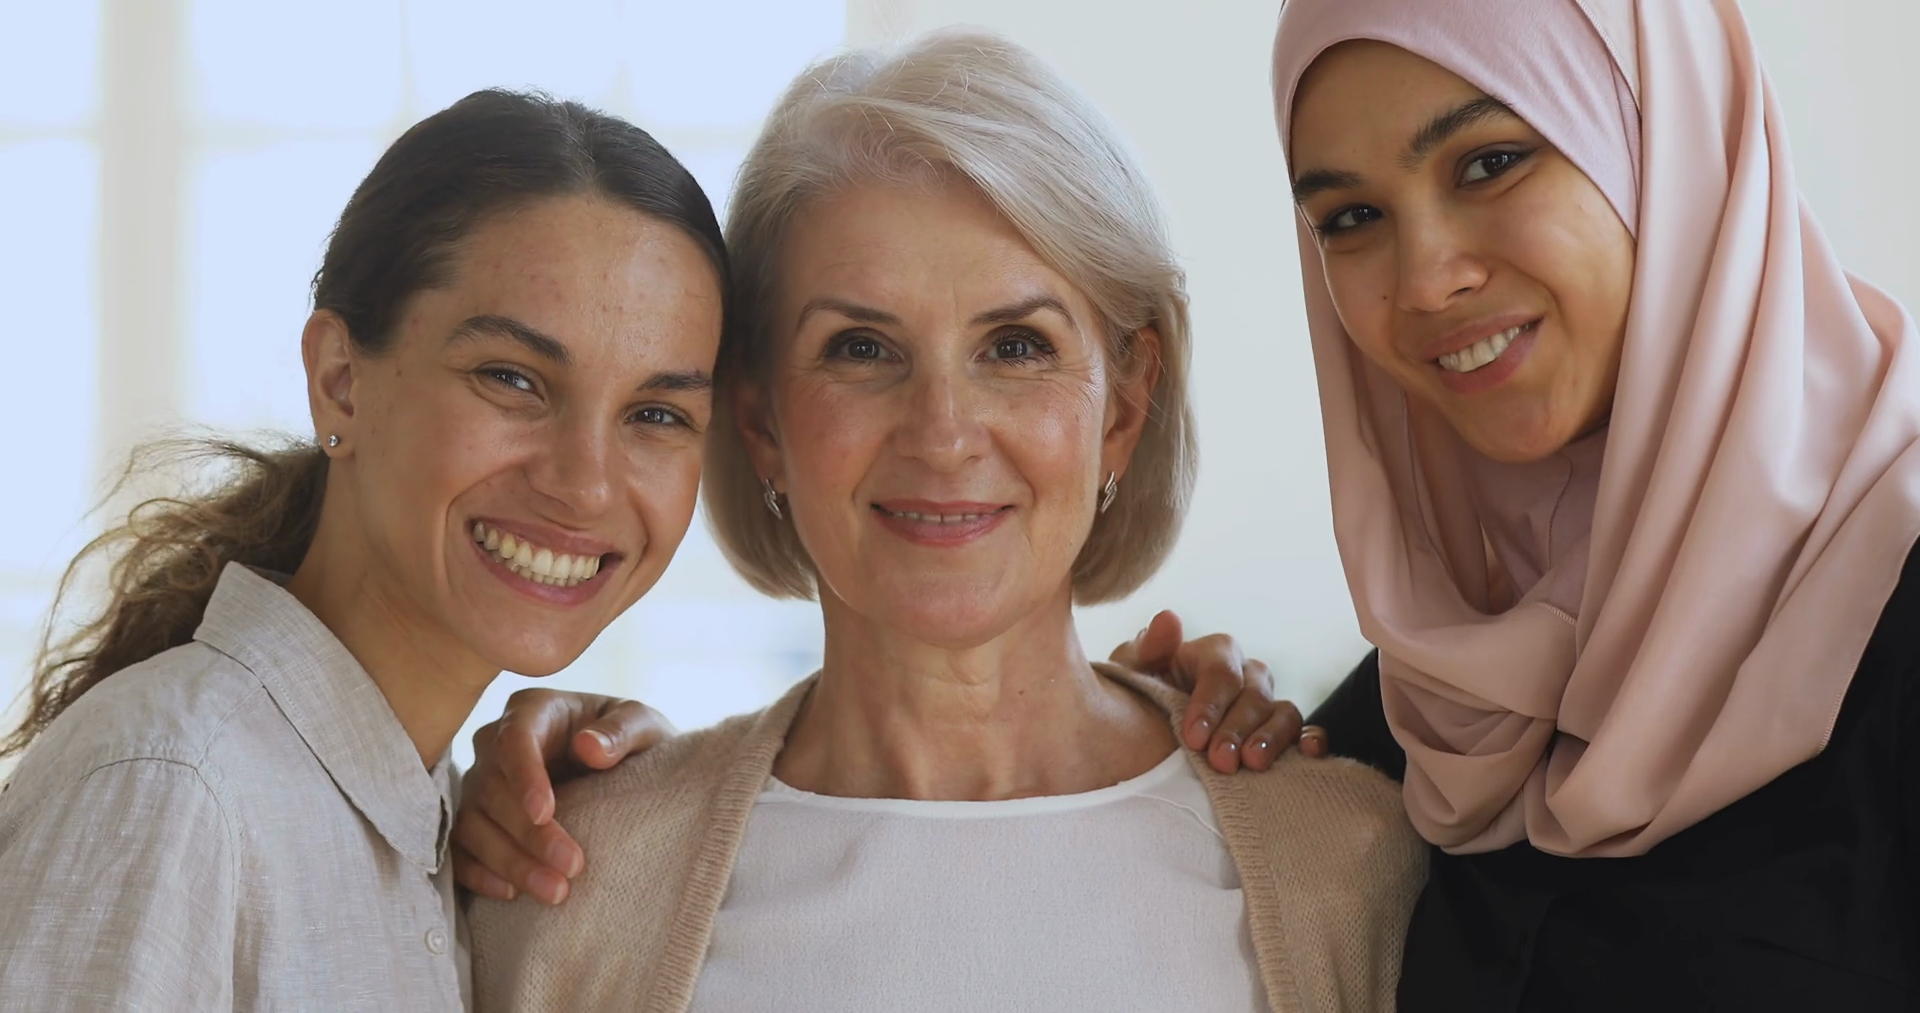 Three diverse smiling women friends embracing looking at